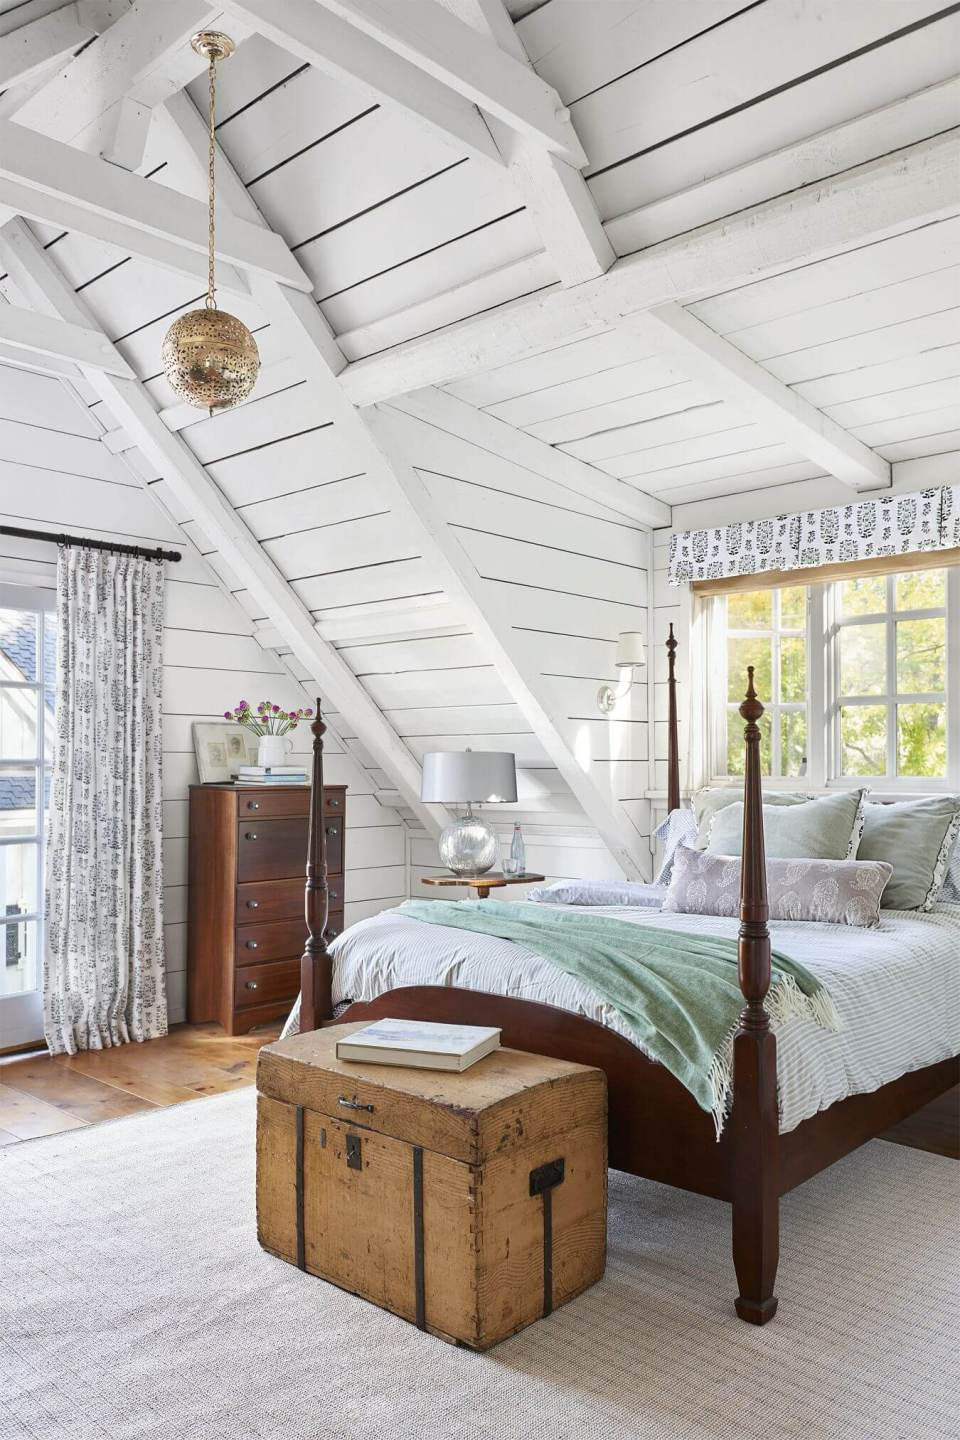 White ceilings with globe light fixture, and a vintage wood trunk